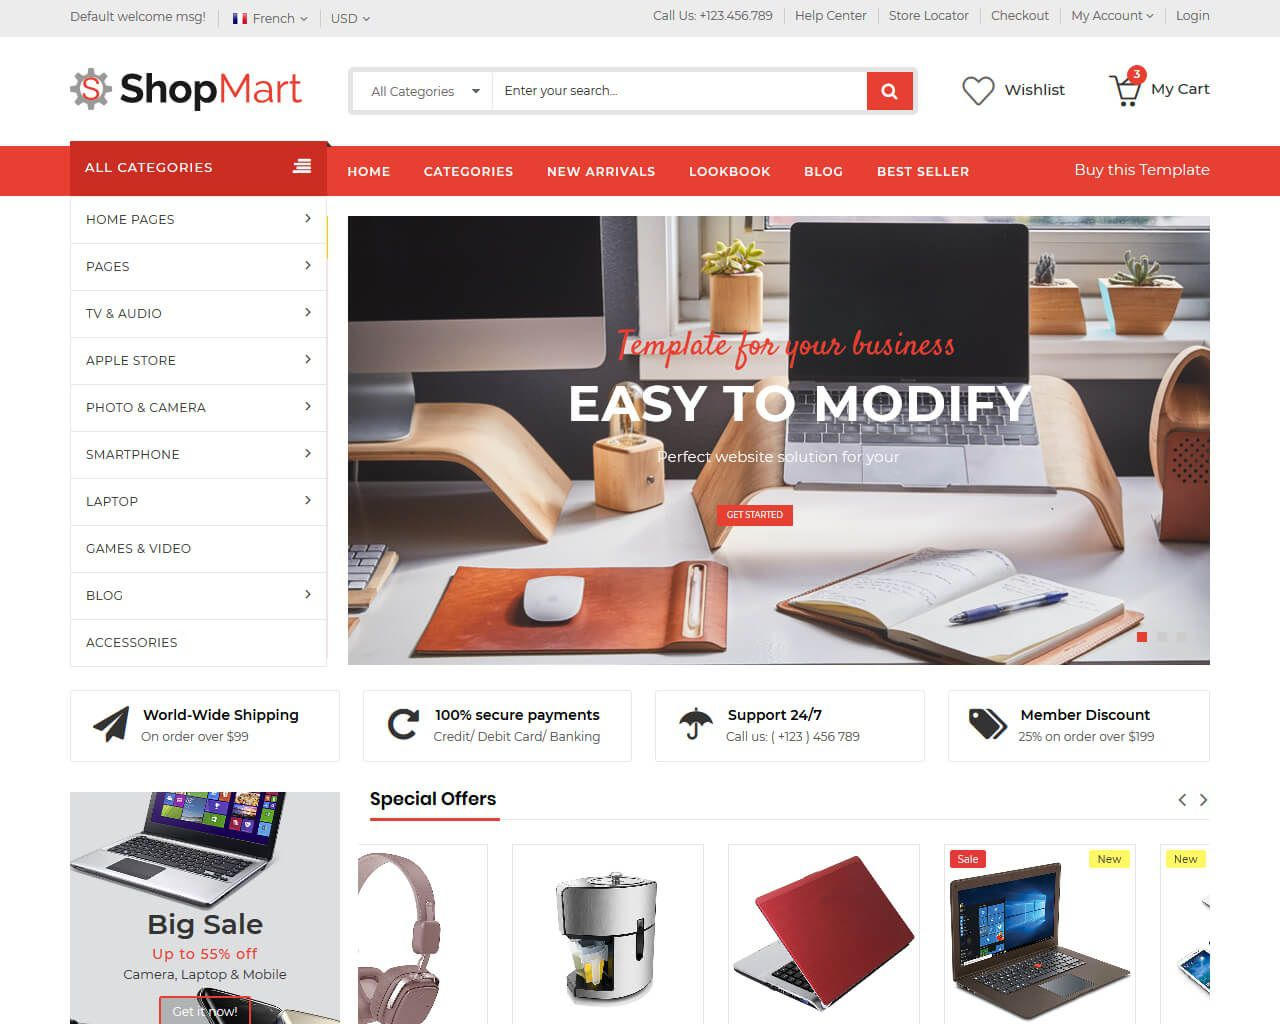 007 Amazing Free Ecommerce Website Template Example  With Shopping Cart Admin Panel BootstrapFull